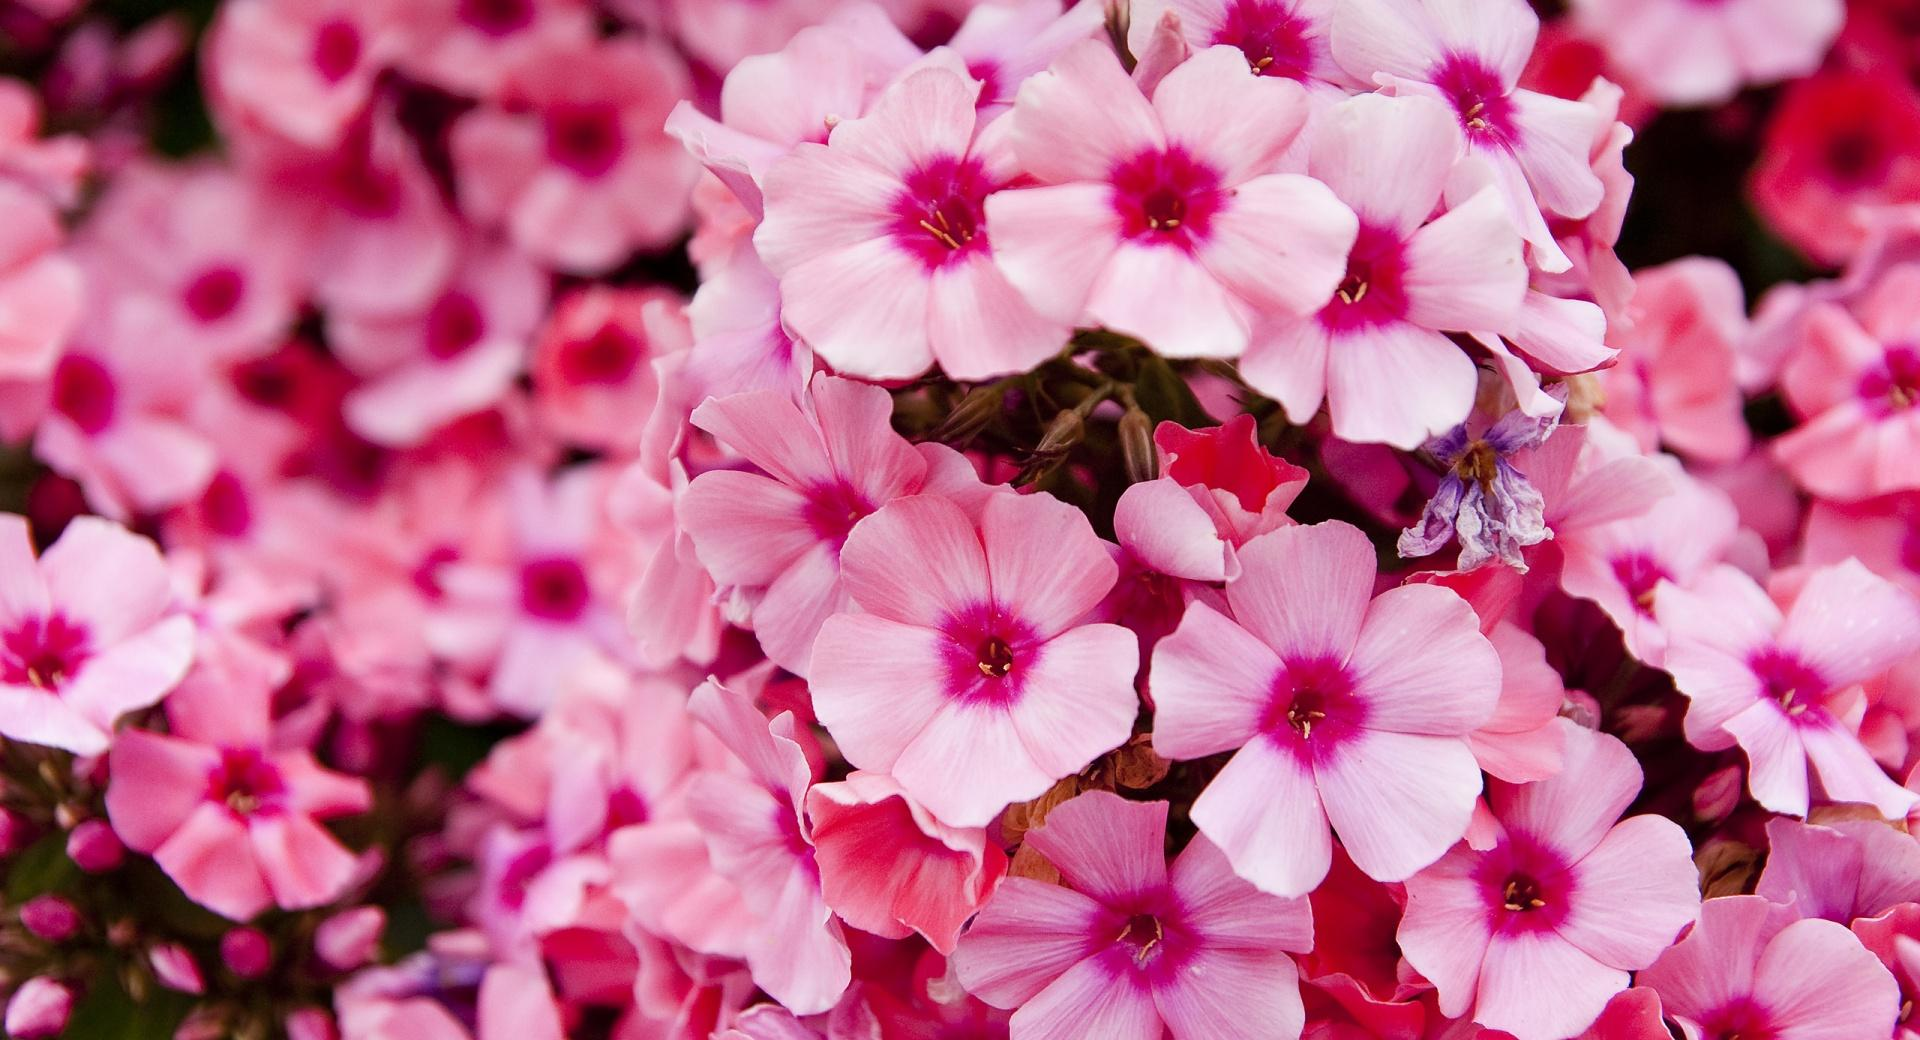 Pink Garden Flowers wallpapers HD quality